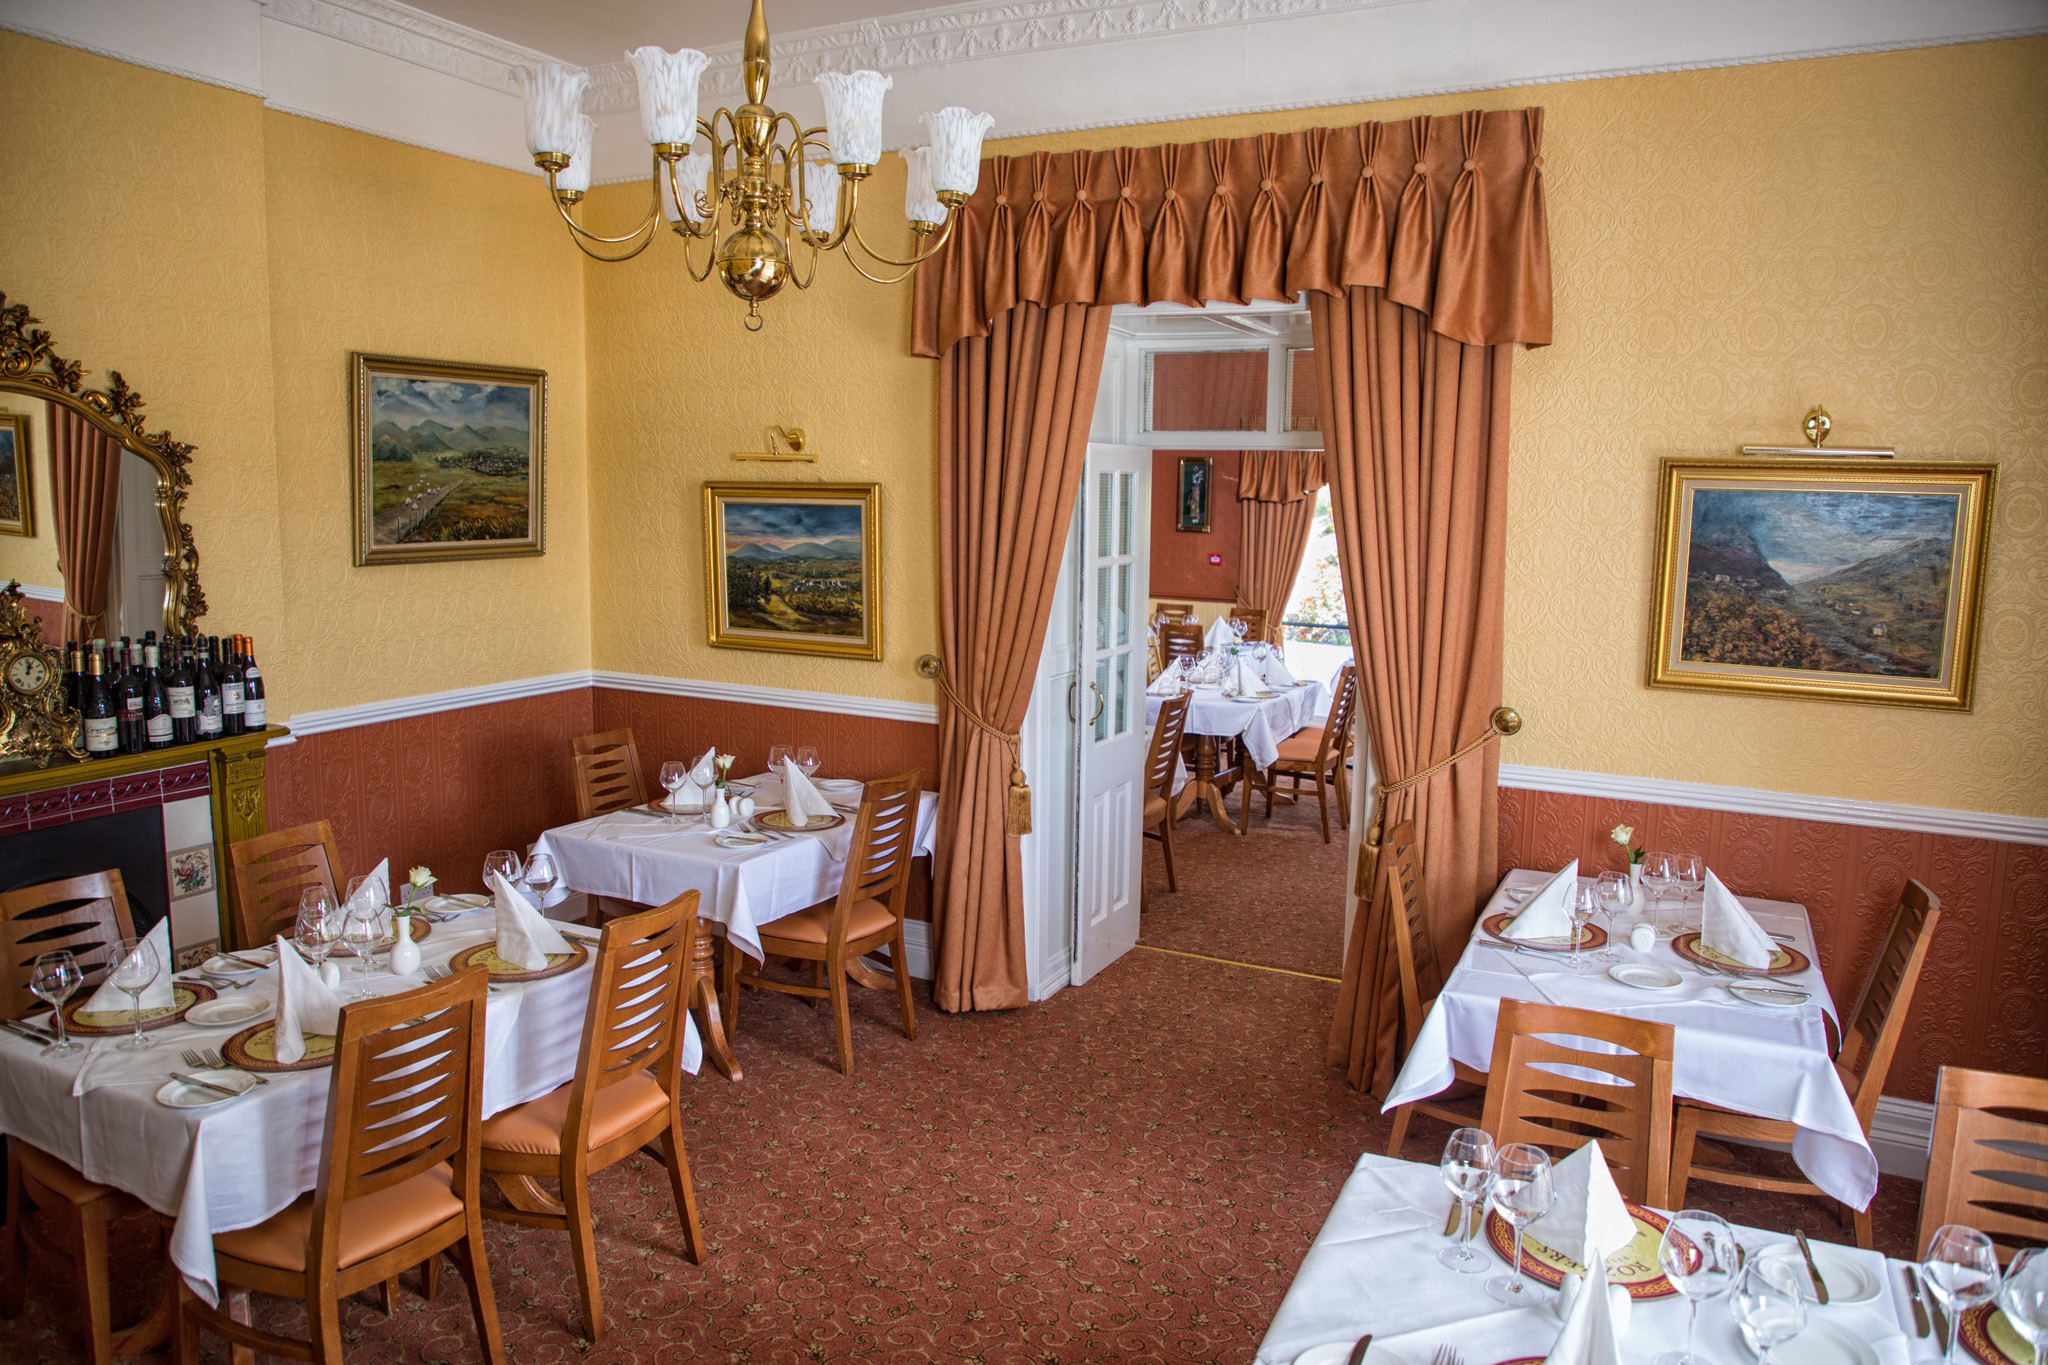 Killeen House Hotel | Aghadoe , Lakes of Killarney, Co Kerry | Photos 30